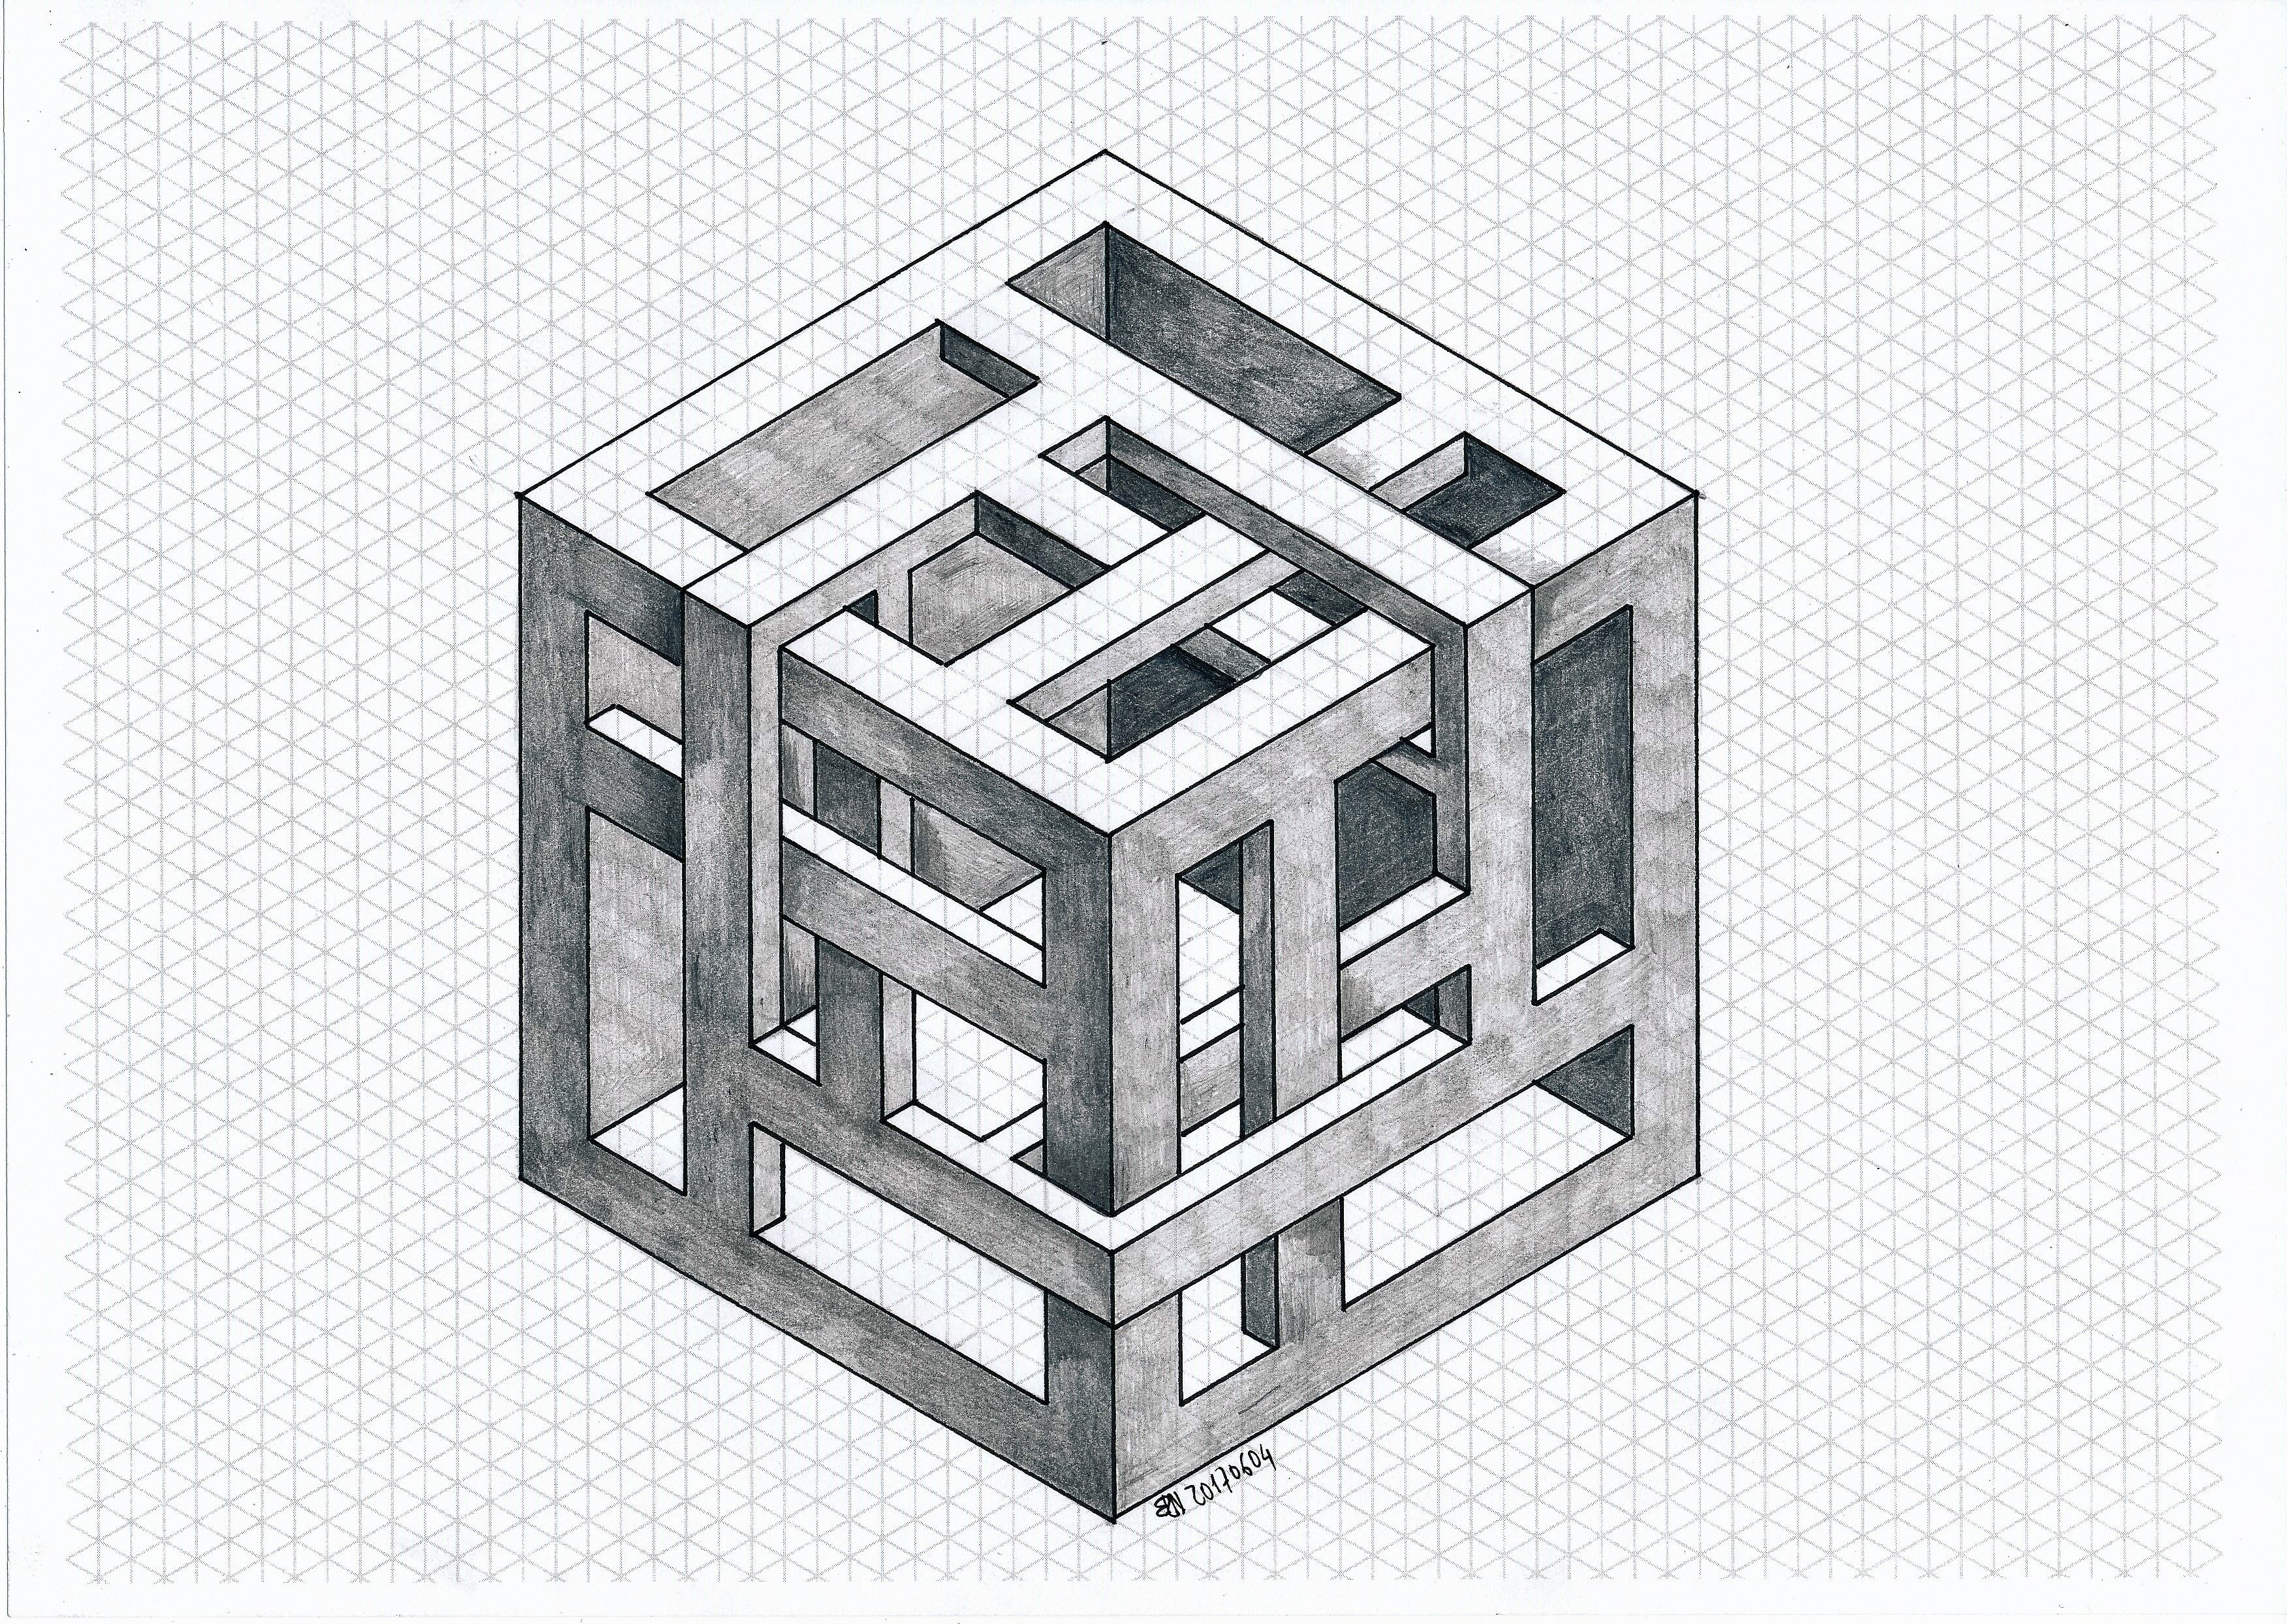 #impossible #isometric #geometry #symmetry #penrose #